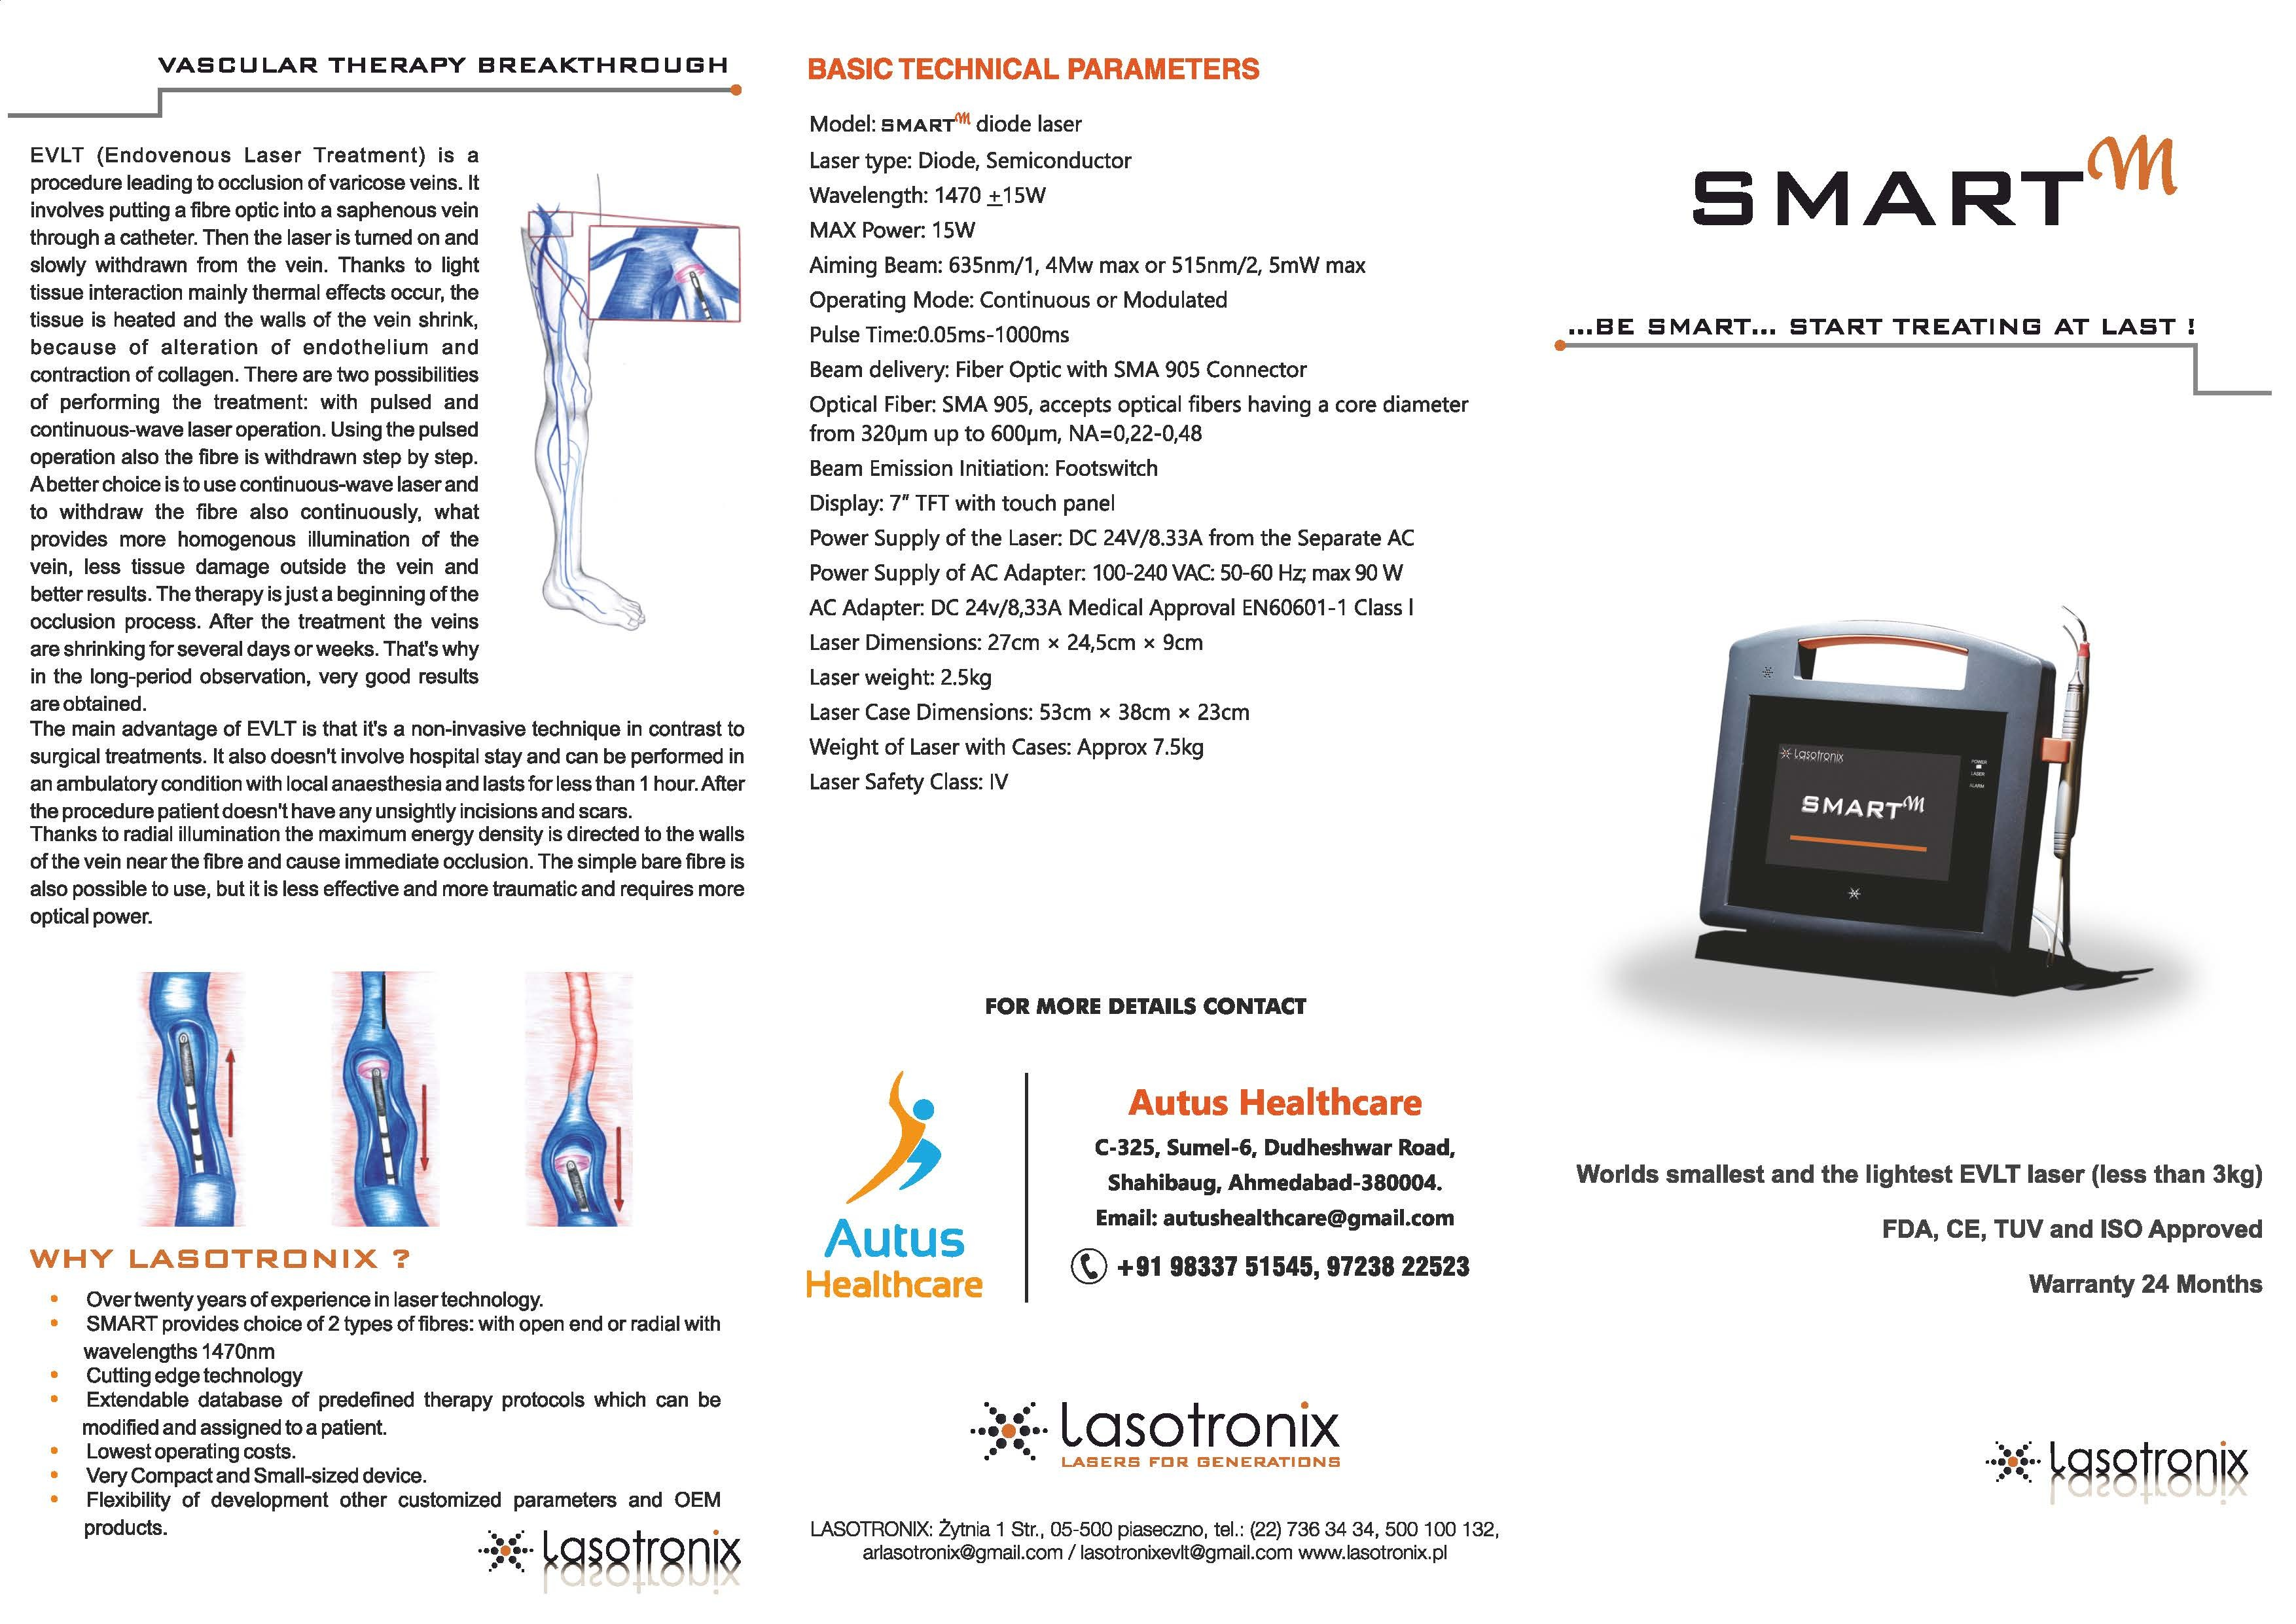 Lasotronix Laser For VARICOSE VEIN 1470nm/15W, Usage: Hospital